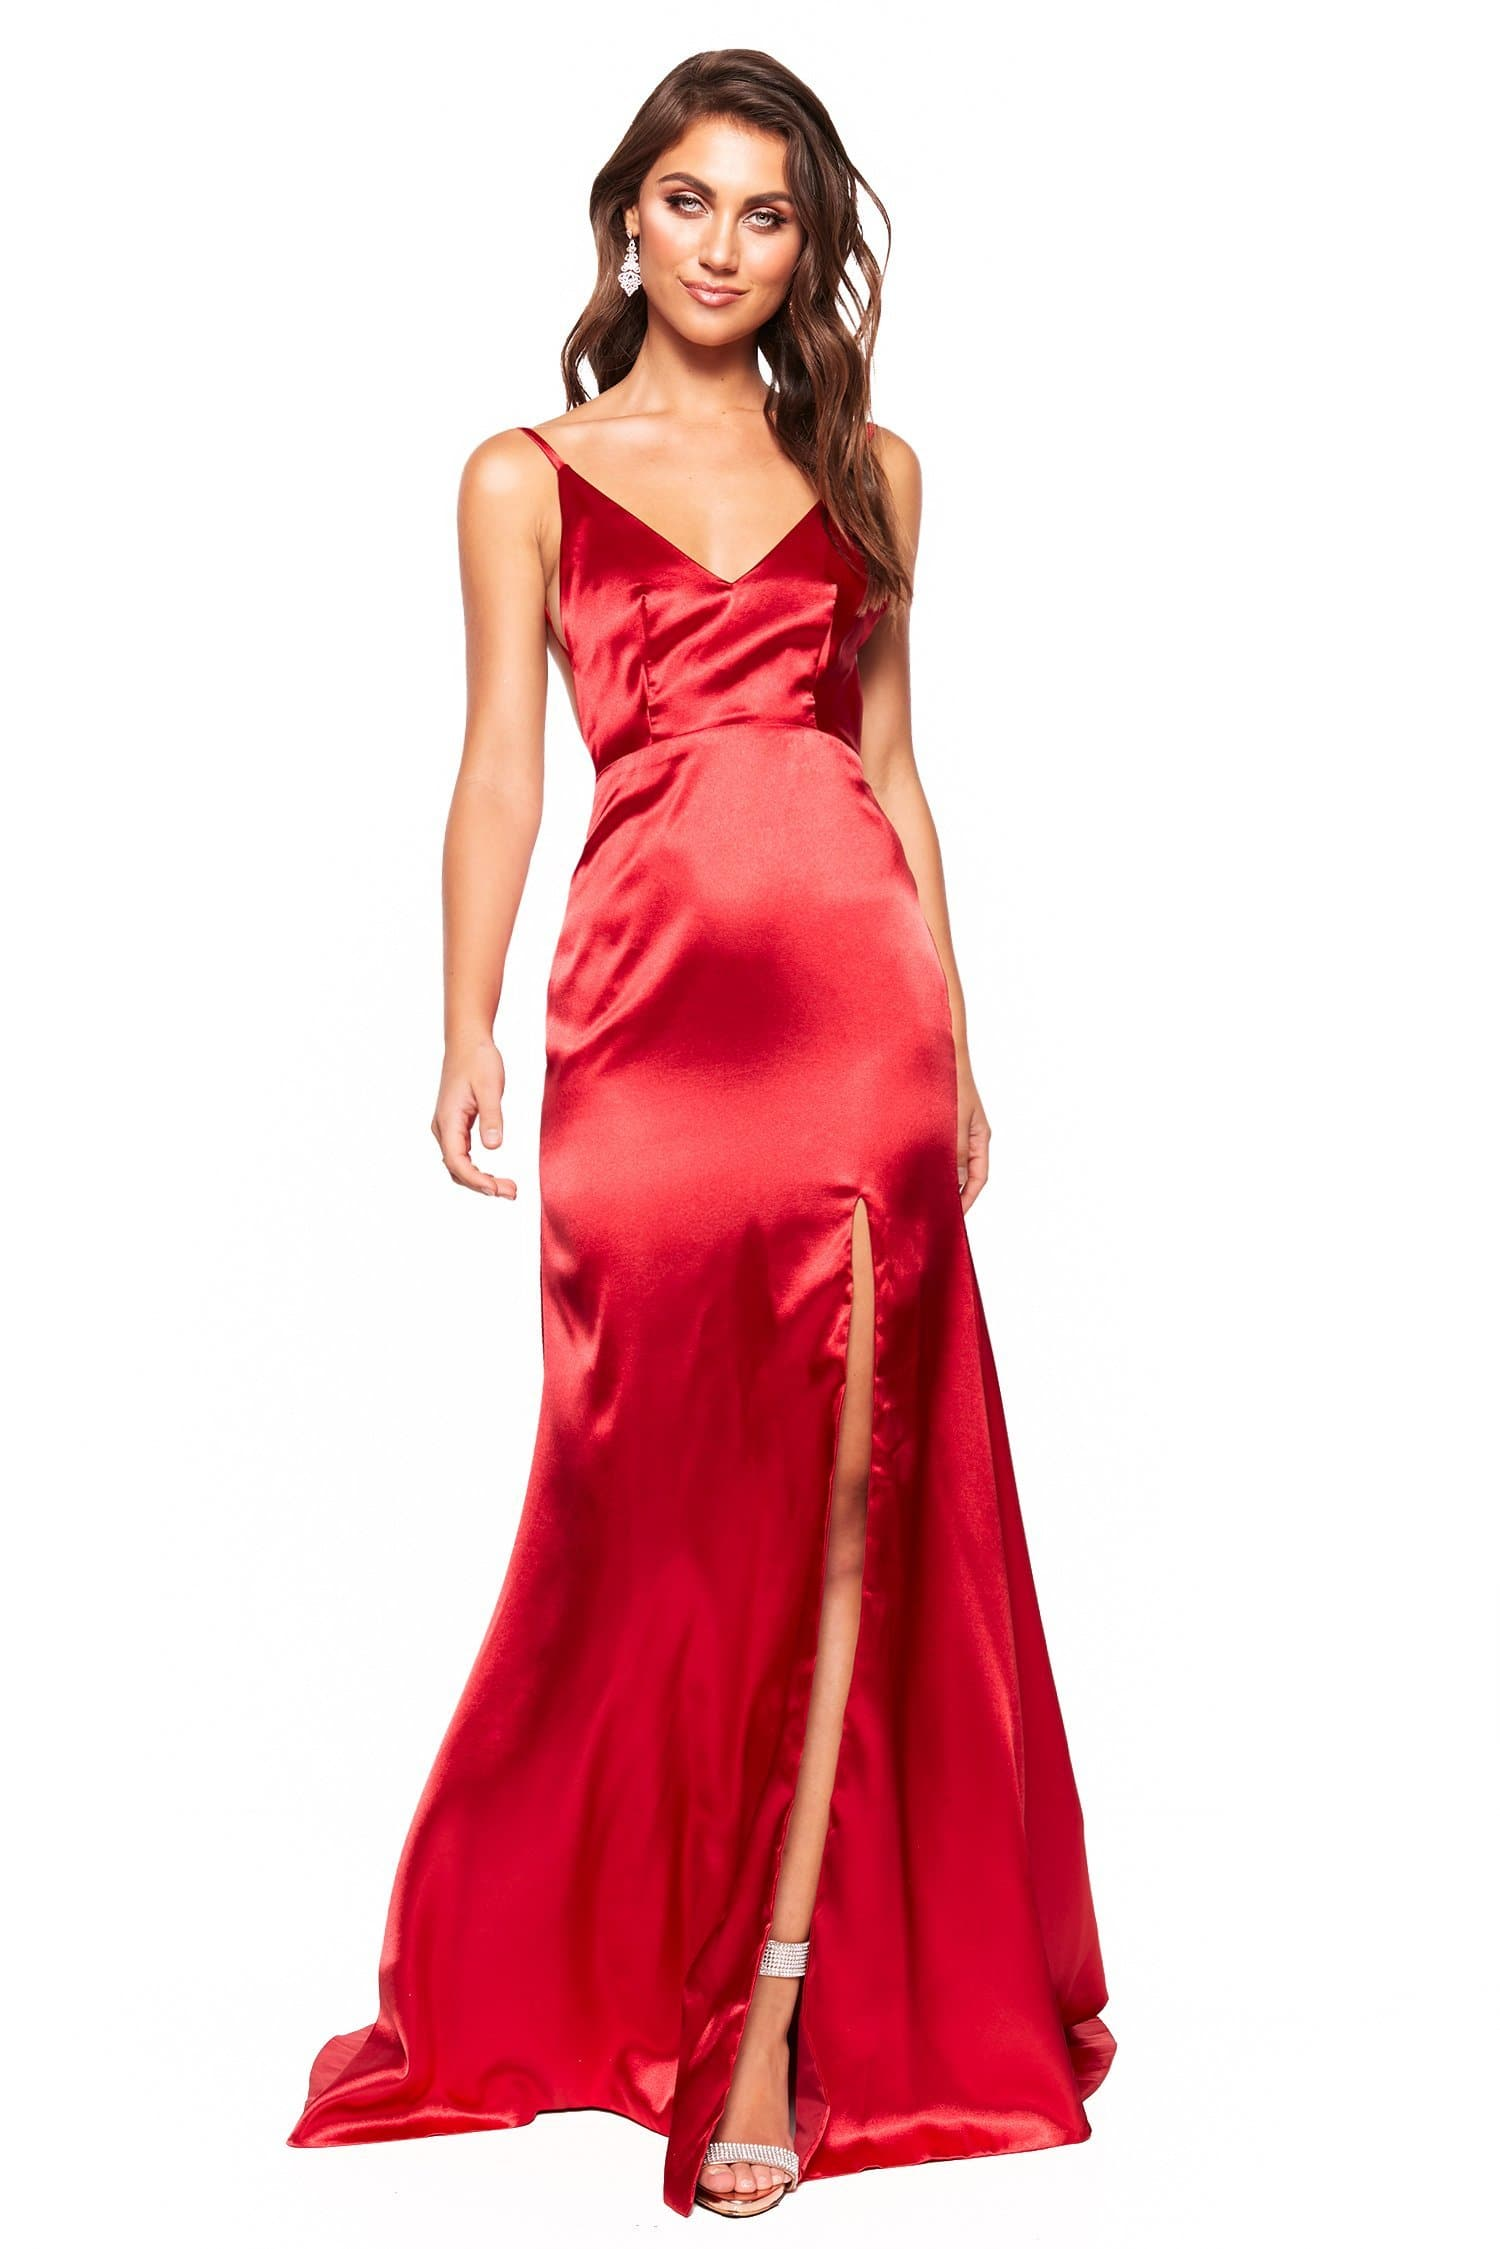 A&N Luxe Inka - Red Satin Low Back Gown with V-Neck and Side Slit